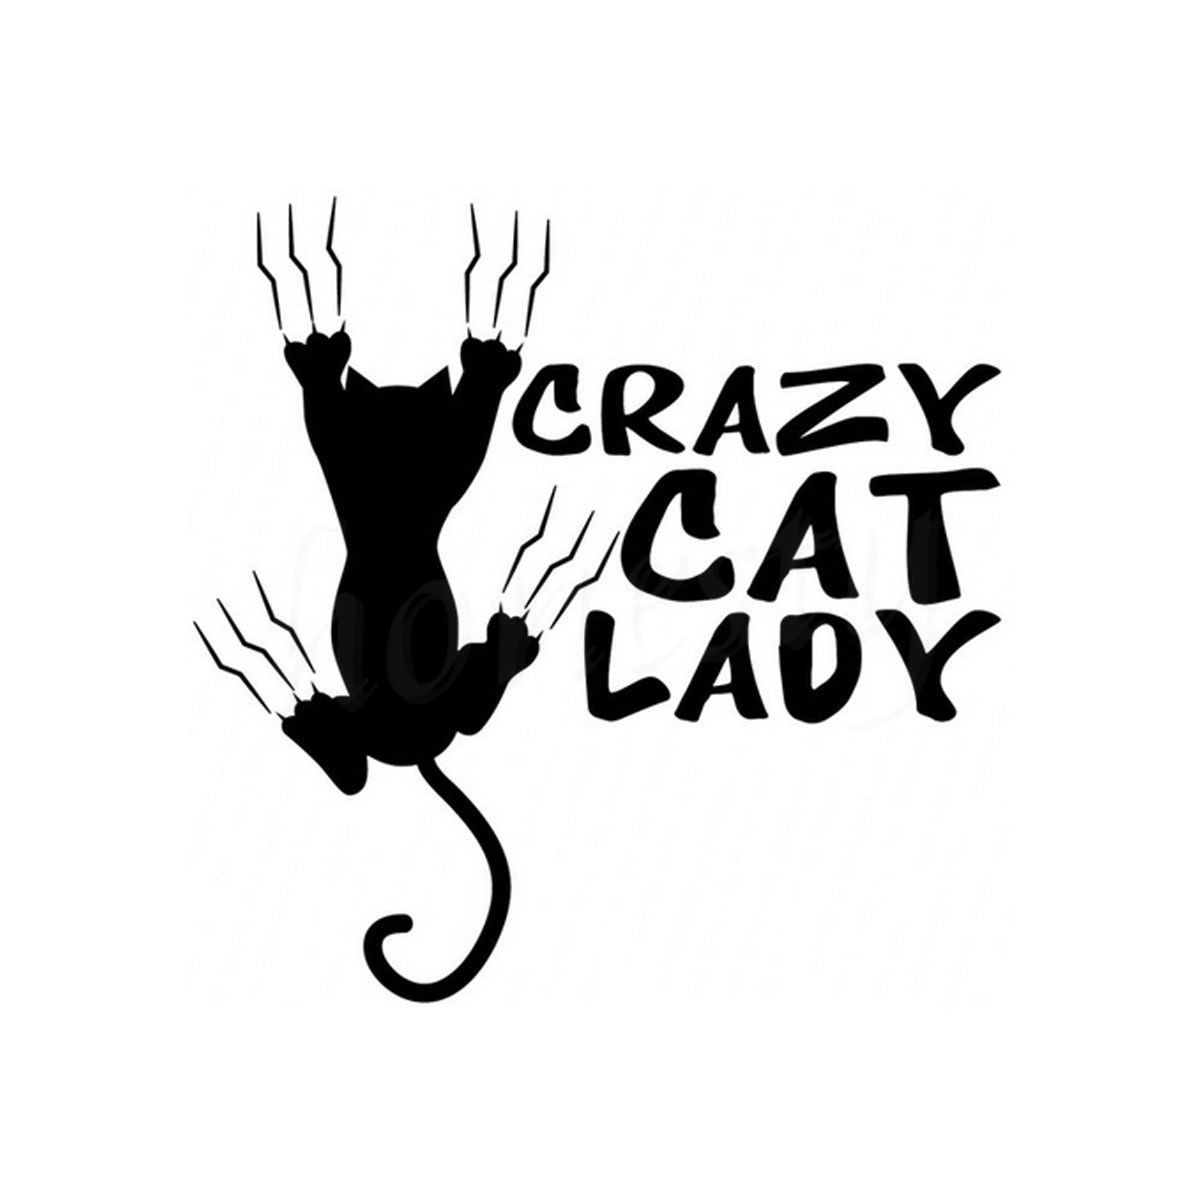 Funny Crazy Cat Lady Vinyl Car Motorcycle Wall Home Glass Window Door Laptop Stickers Decals Car Styling Black 11.5cmX11.5cm